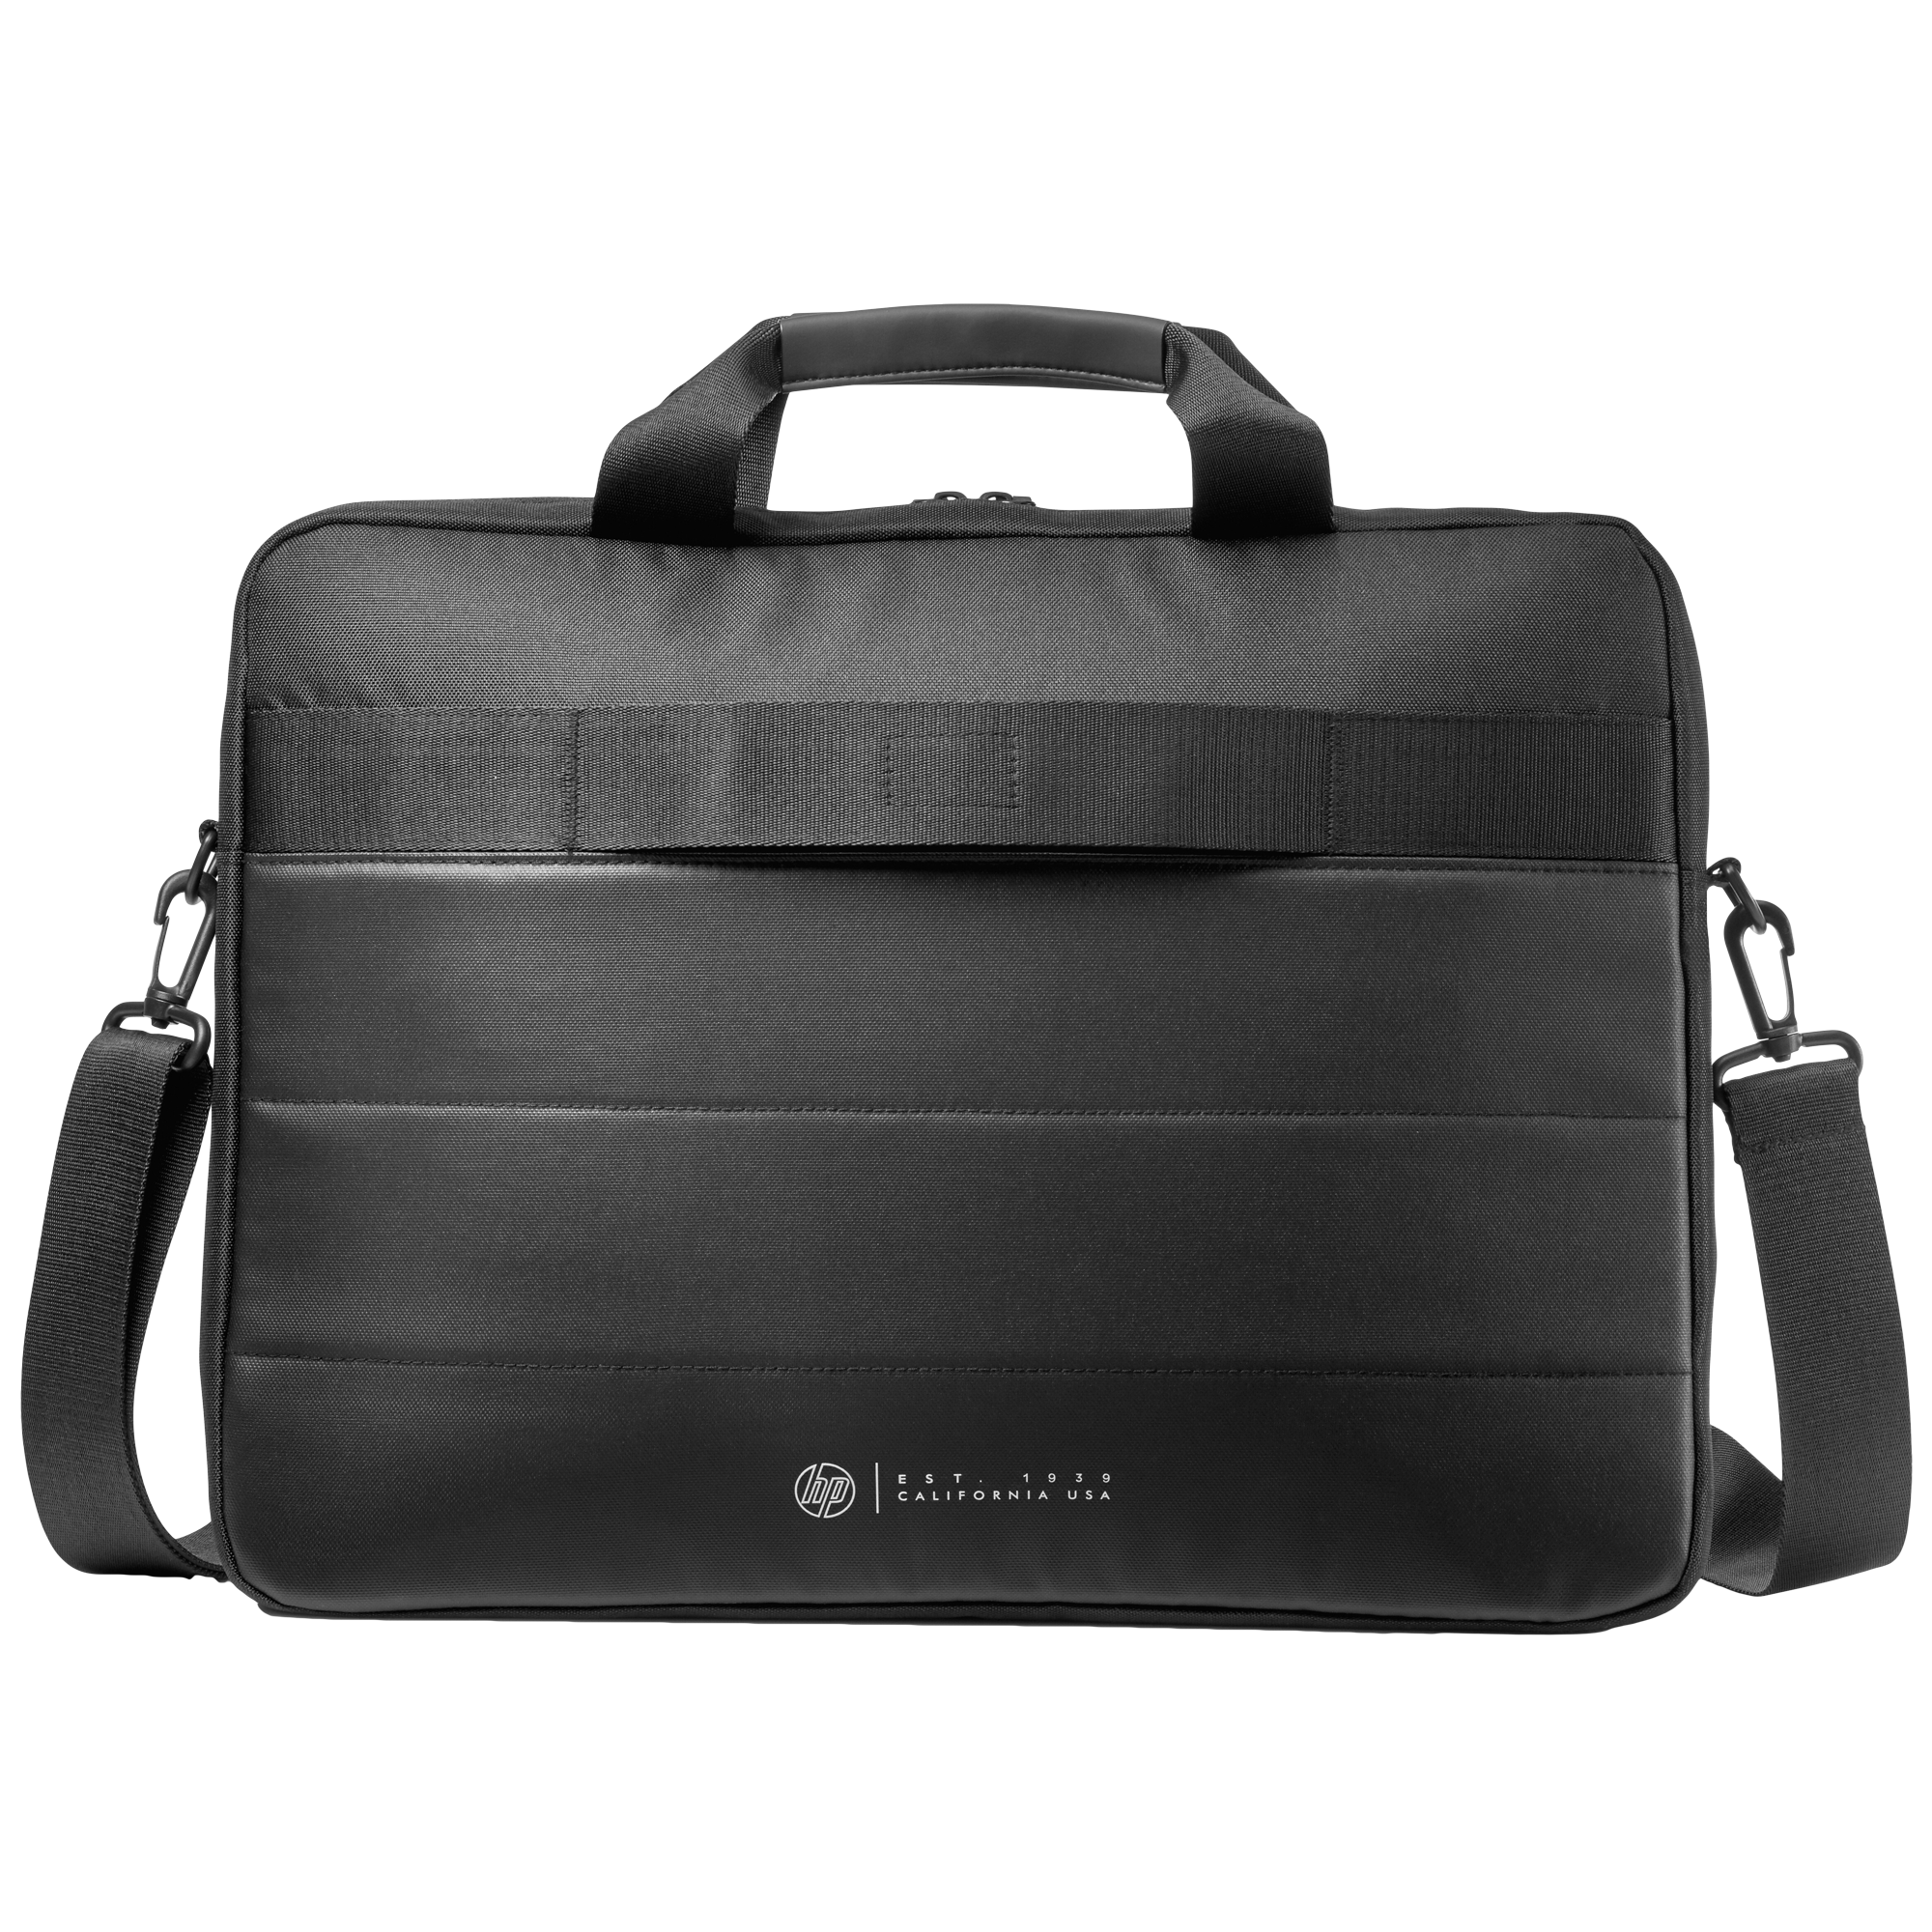 HP Classic 18 Litres Nylon Briefcase for 15.6 Inch Laptop (Water Resistant, 1FK07AA, Black)_1